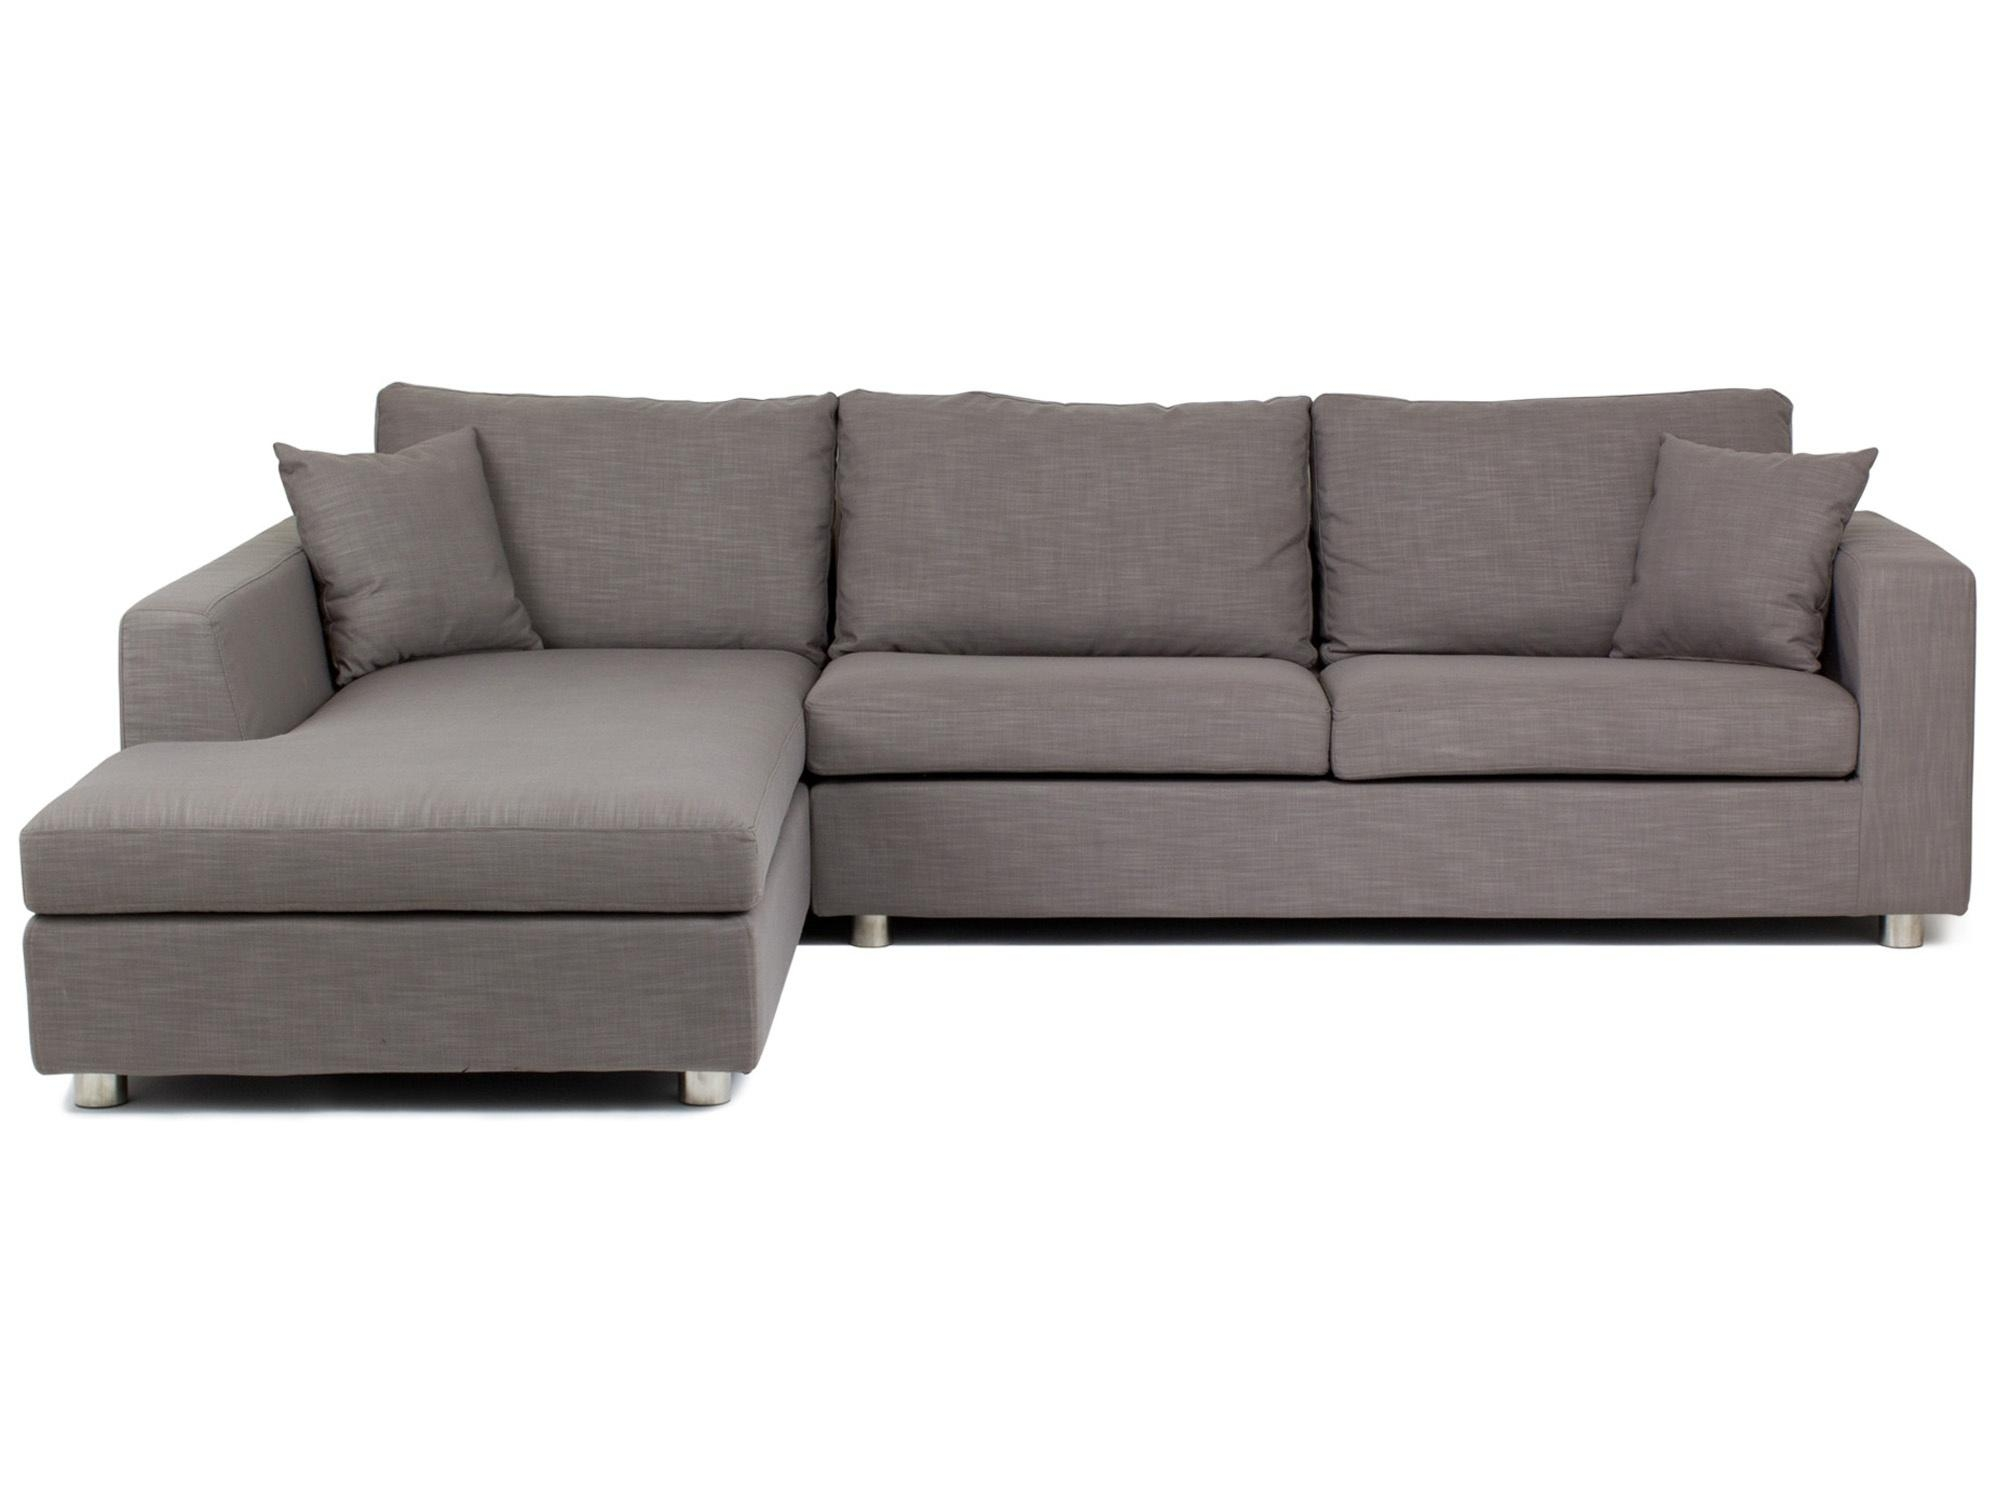 Sofas Center : Camden Large Chaise Sofabed Grey 1 Tbw Sofae In Sofa Beds With Chaise Lounge (View 7 of 20)